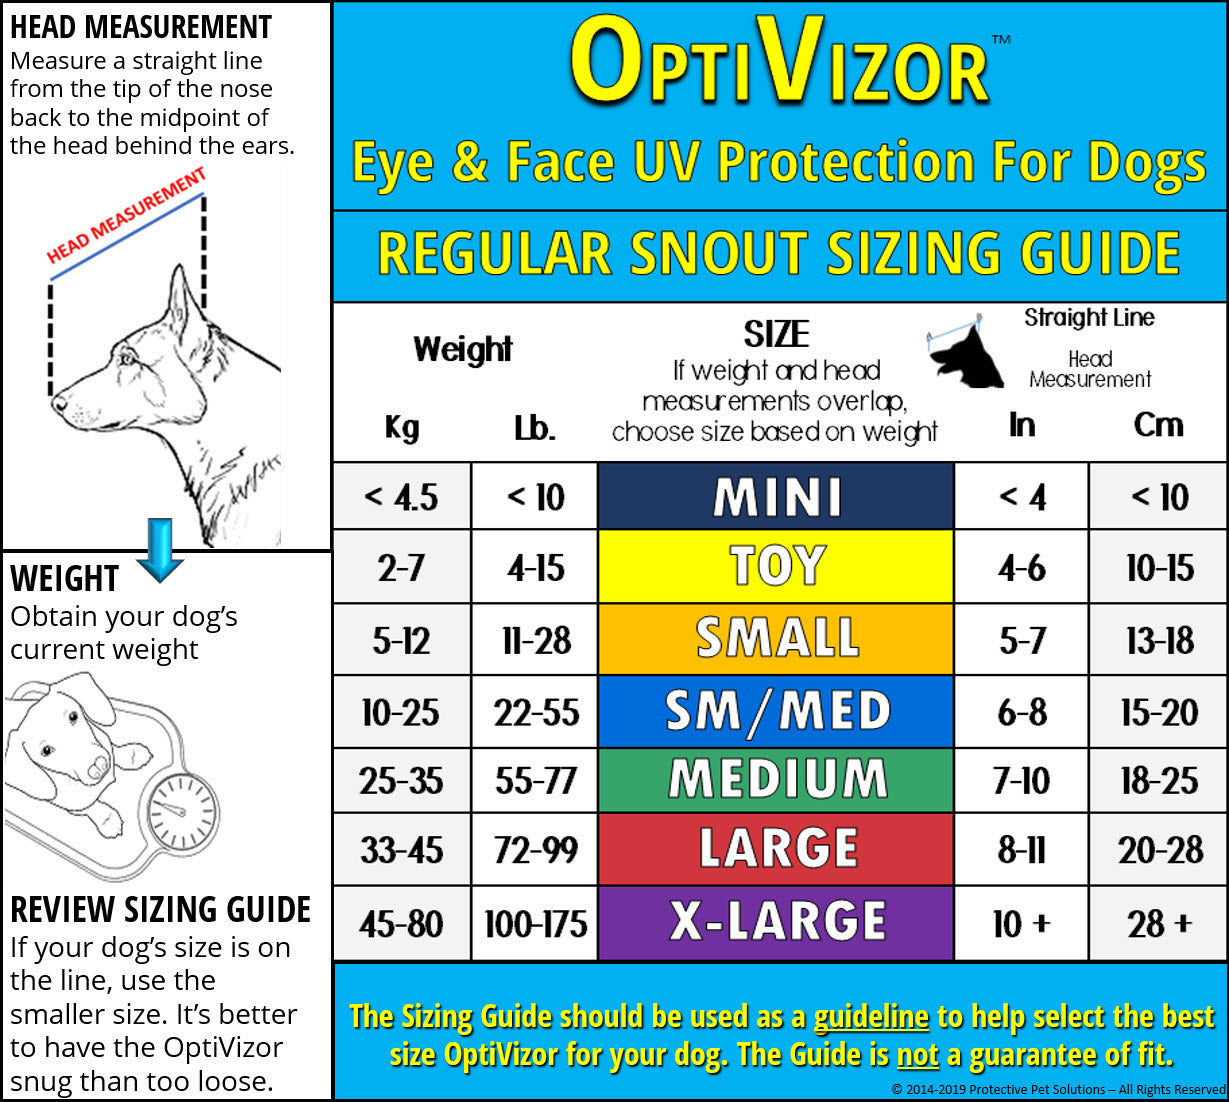 optivizor uv eye protection for dogs and cats - regular snout version sizing guide